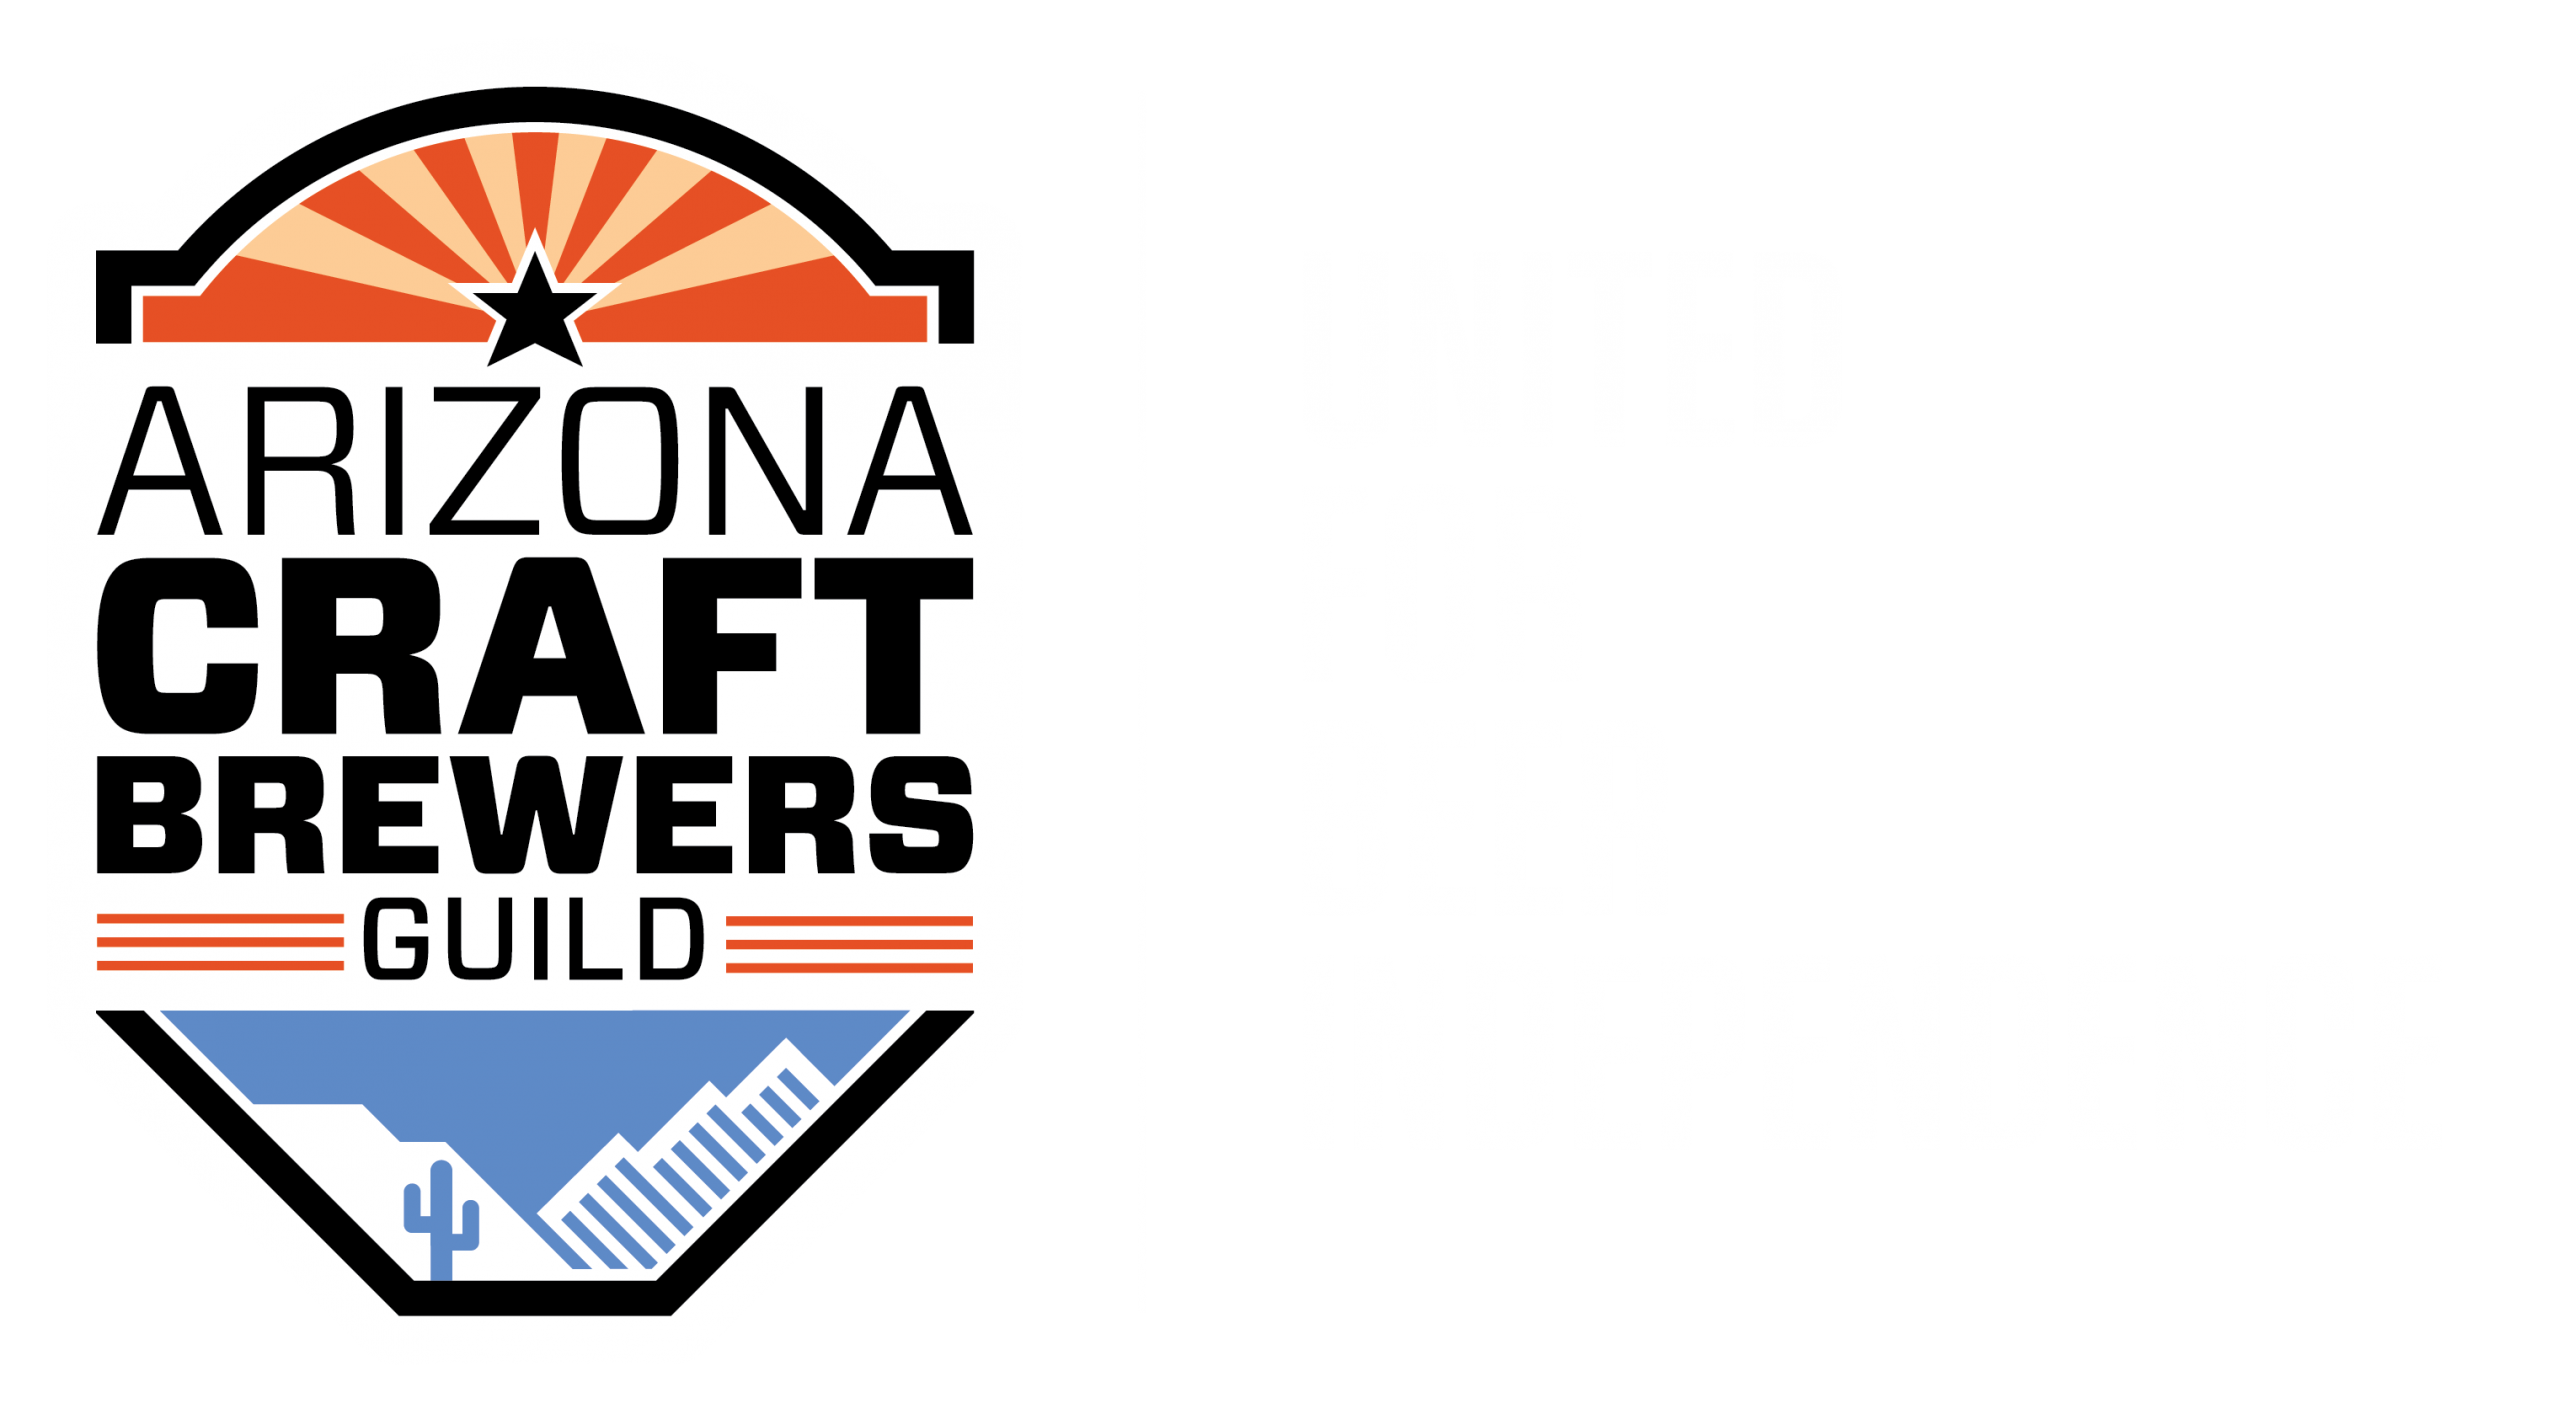 Contact | Arizona Craft Brewers Guild